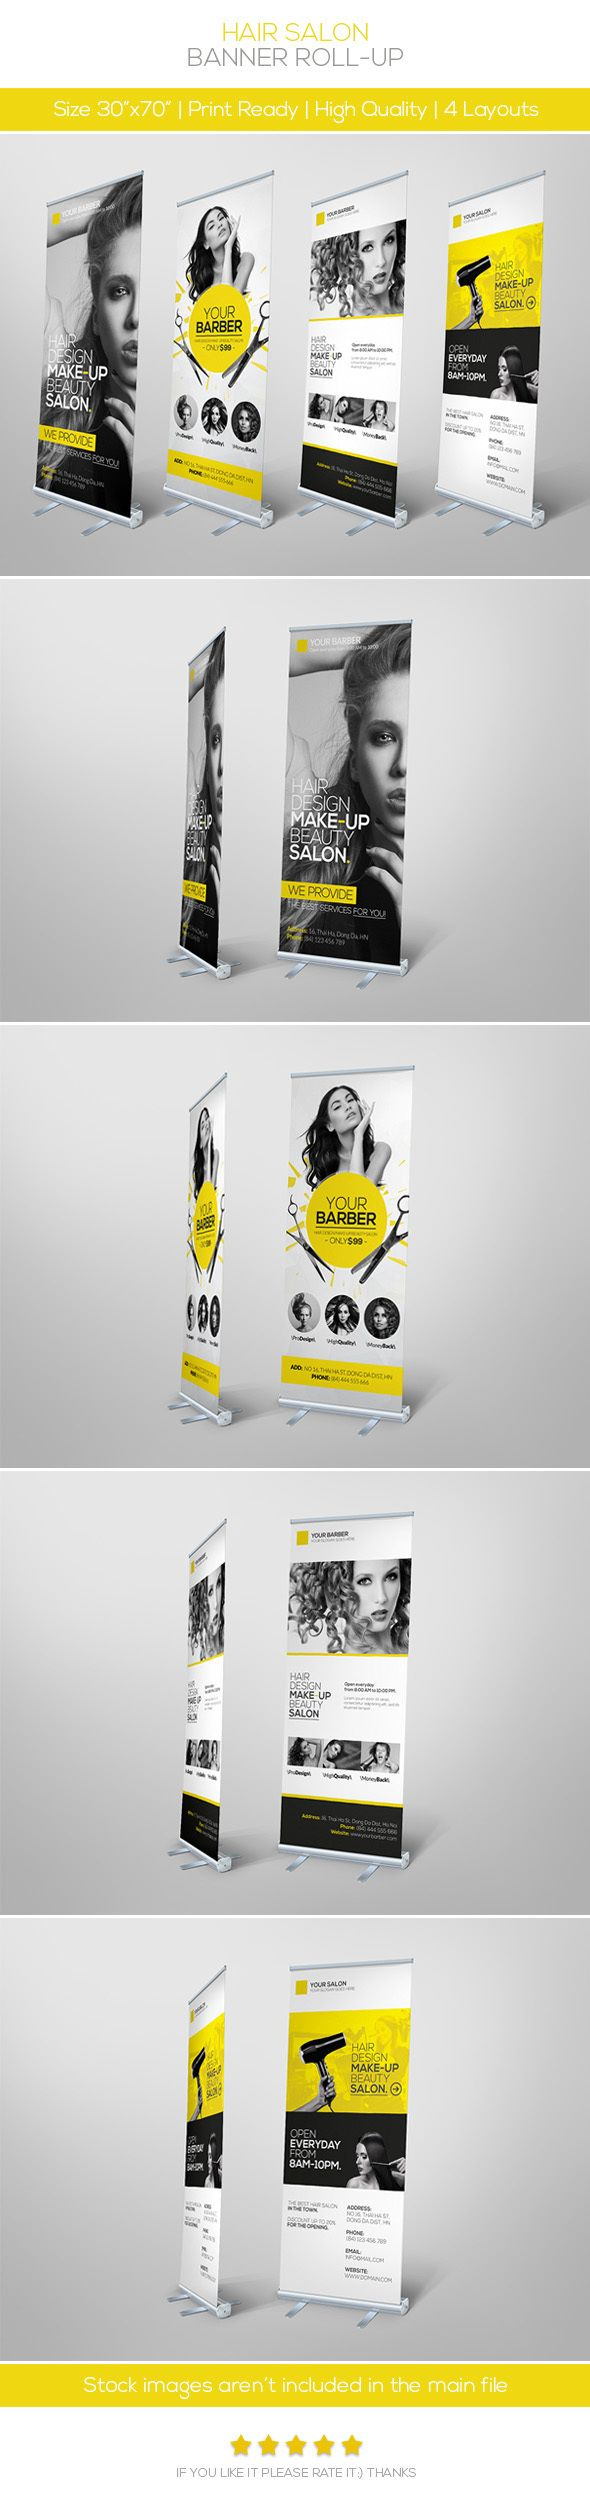 premium hair salon roll up banner